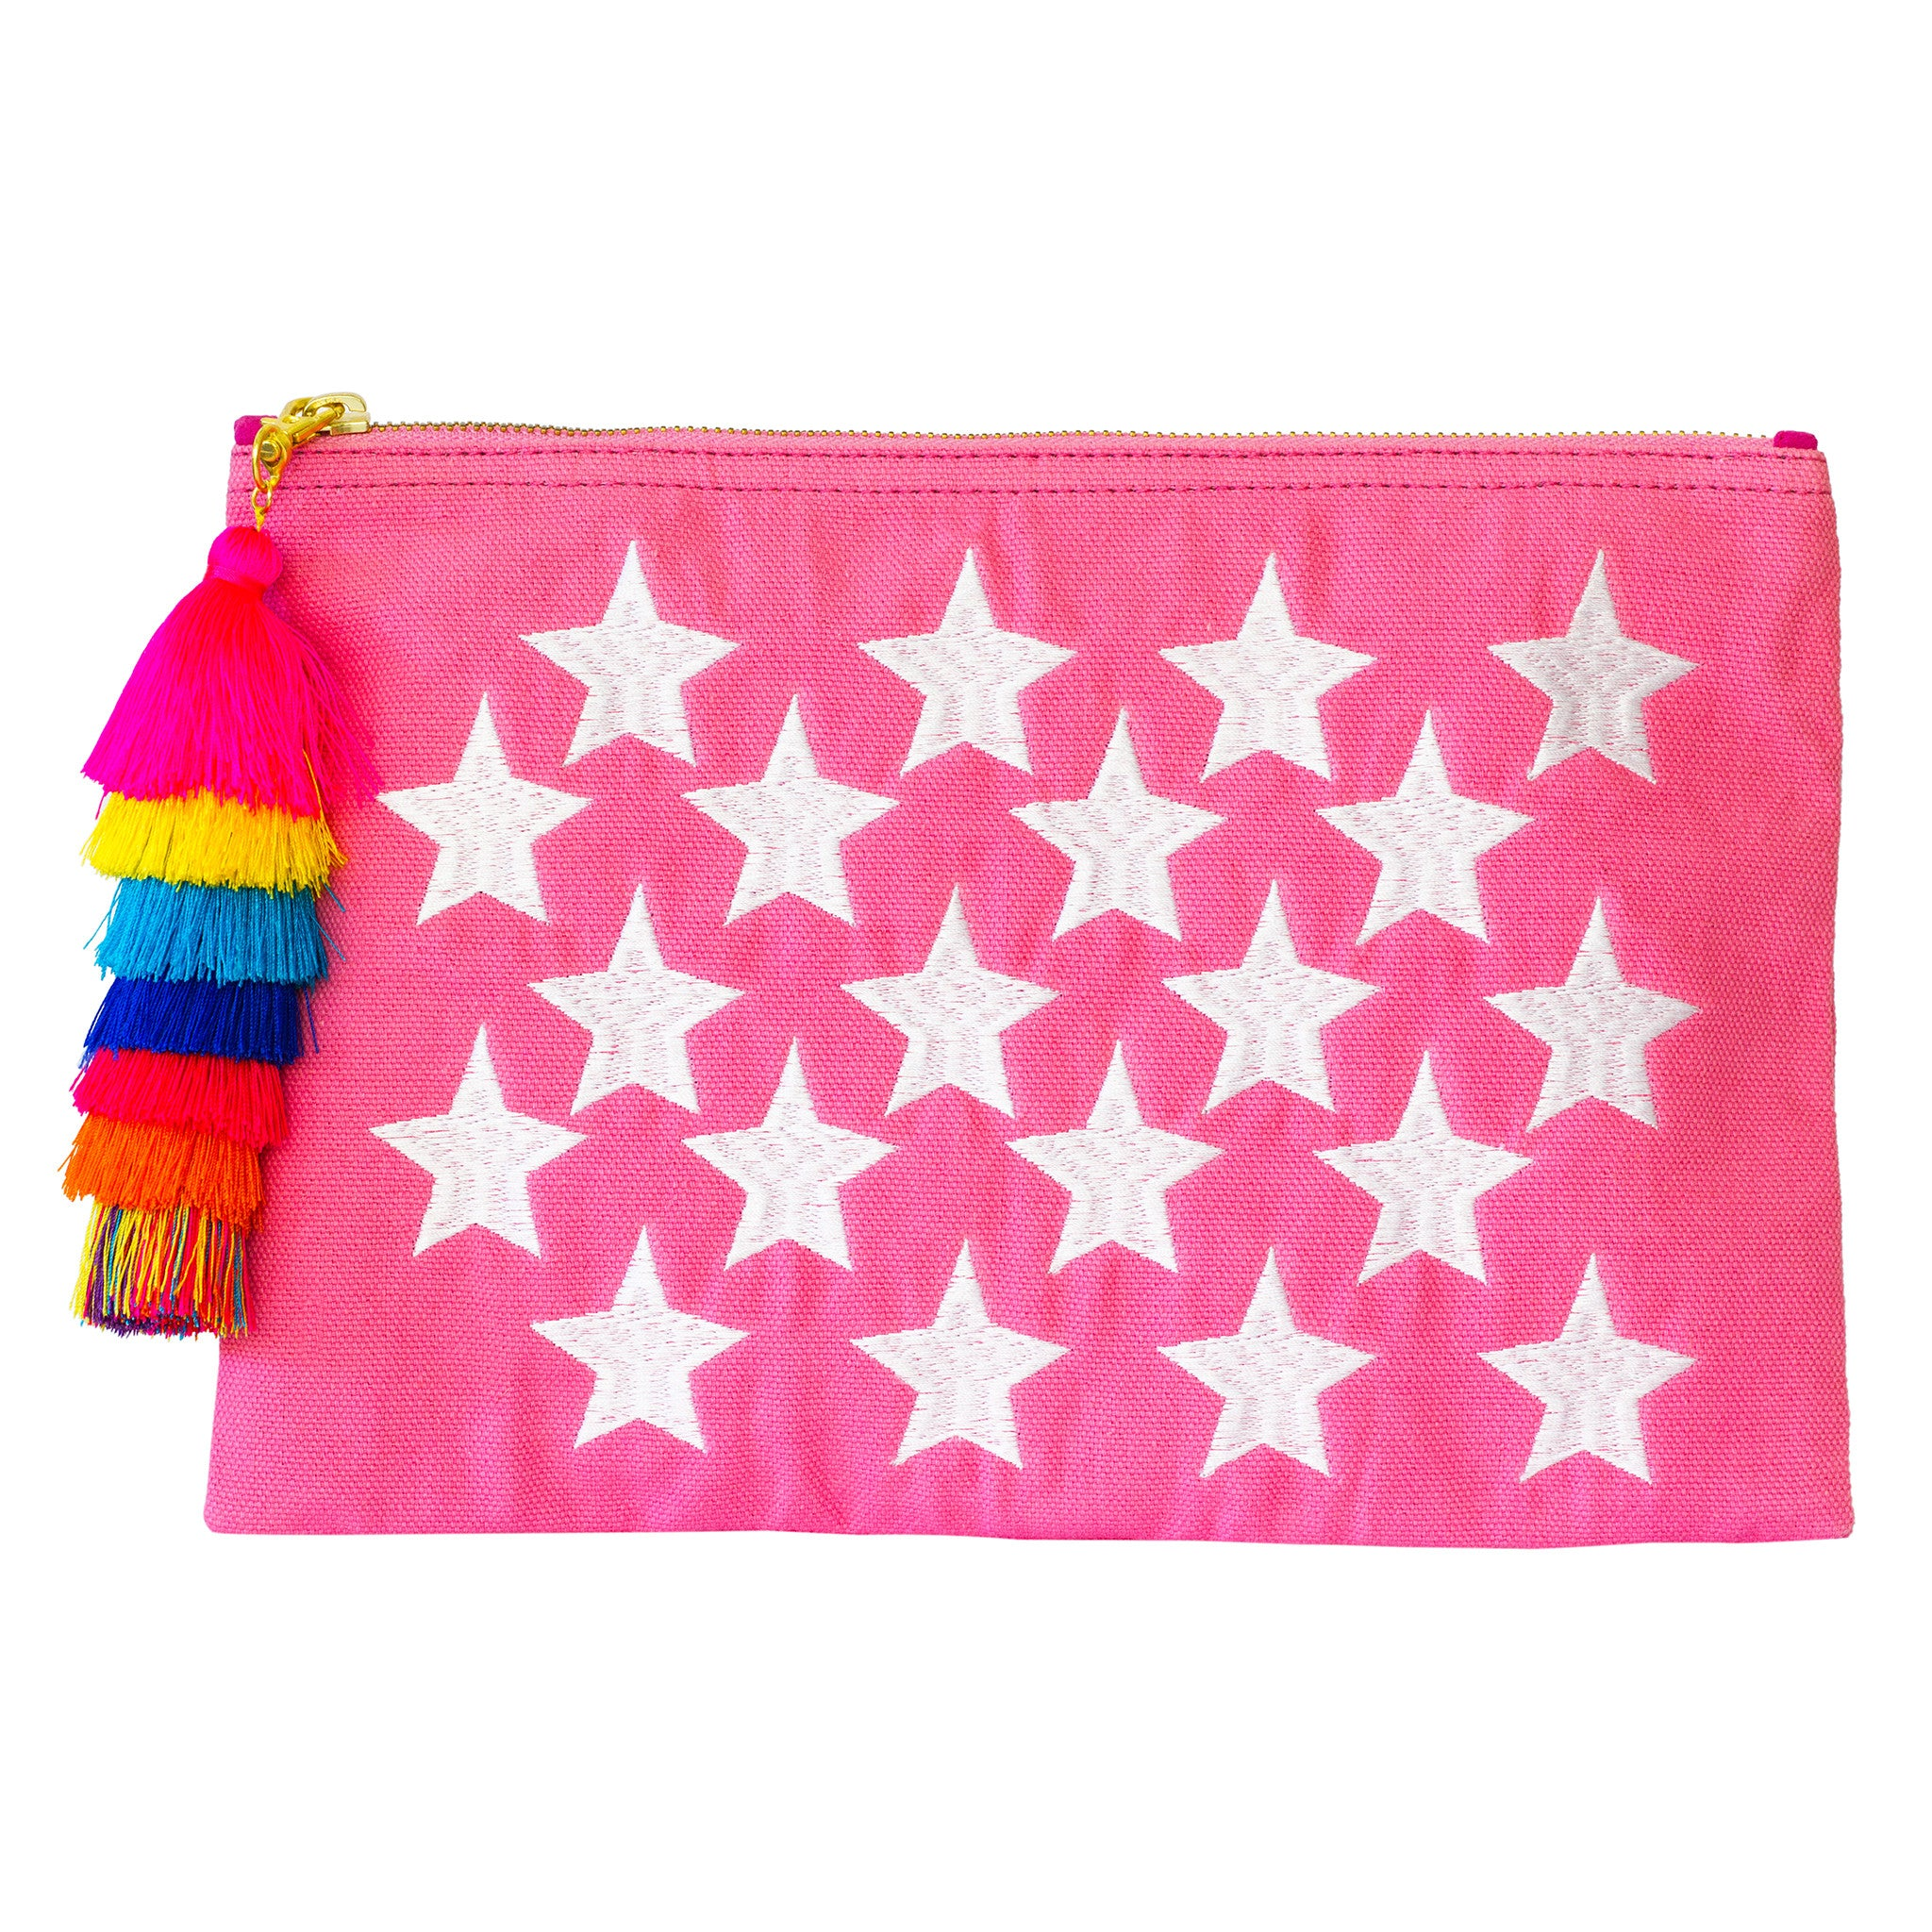 Star-Pom Pom Bohemian Clutch Purse